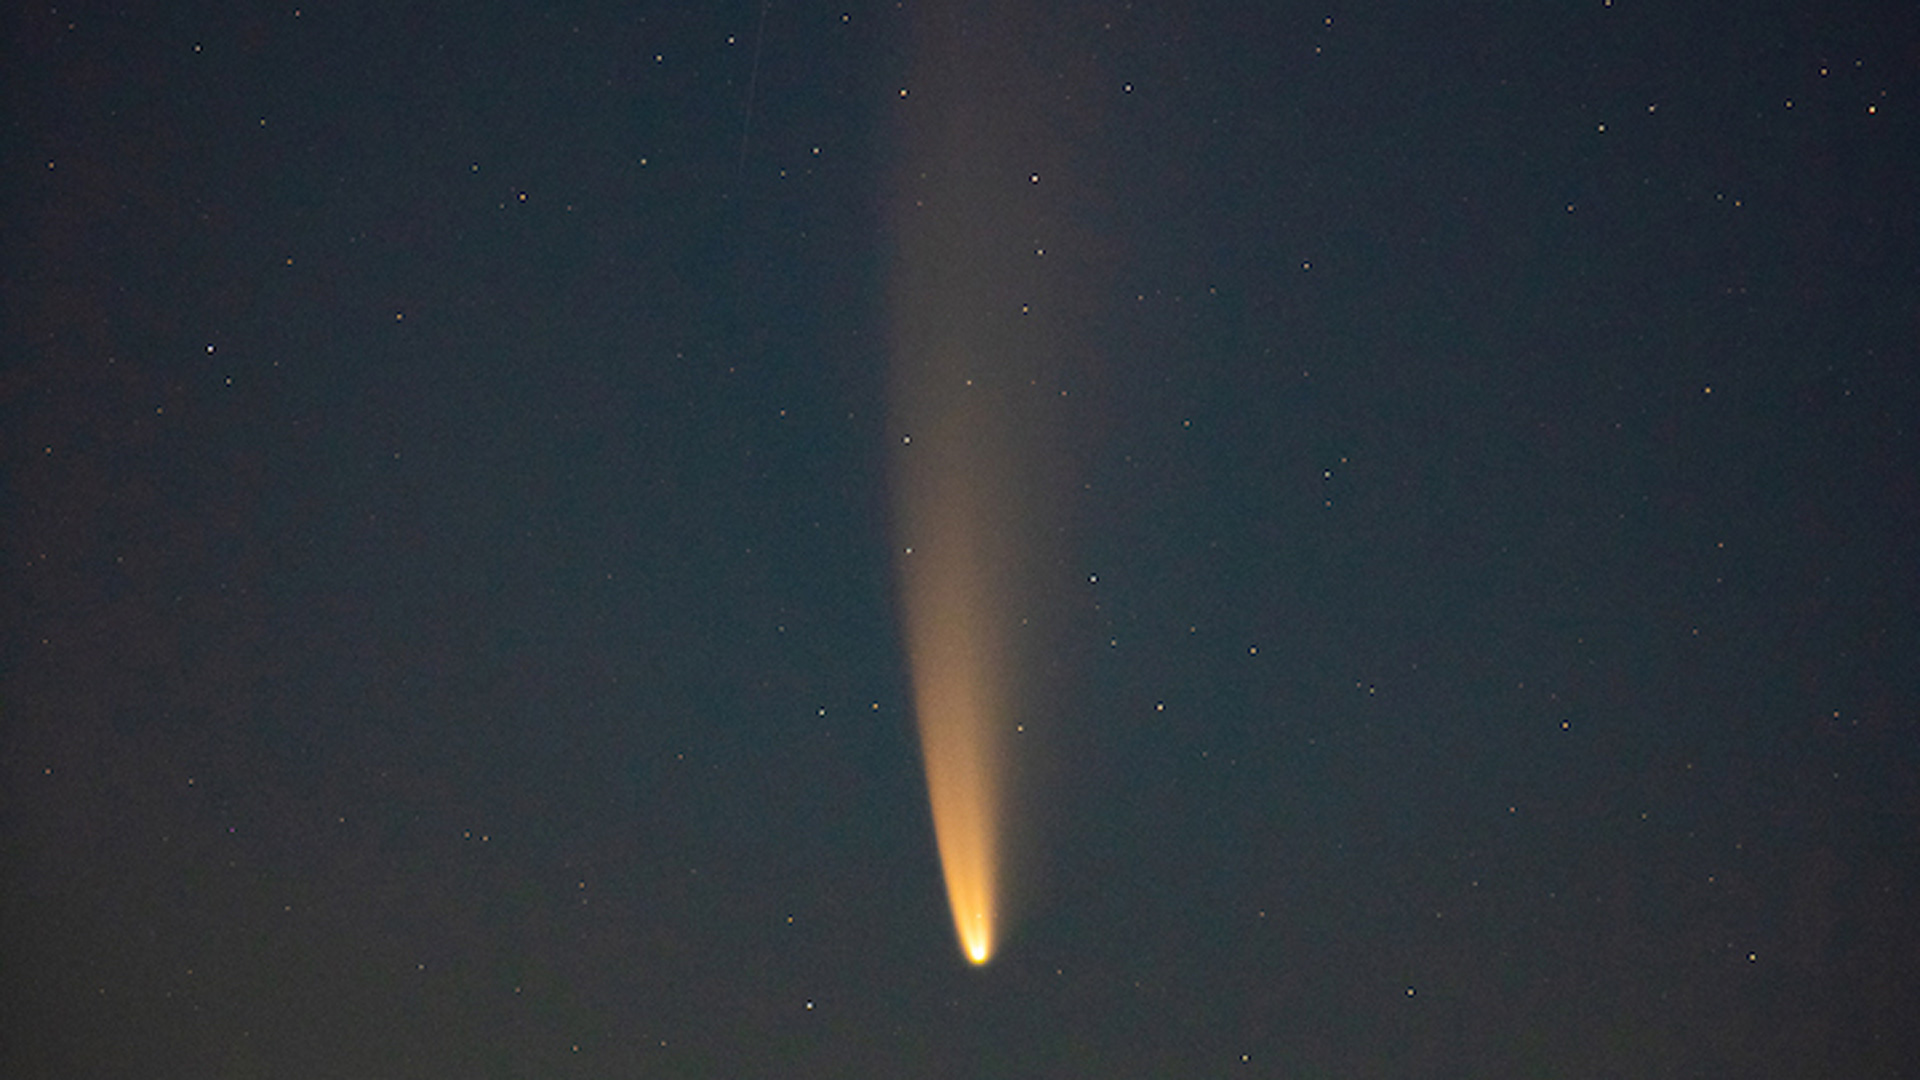 Image of Comet Neowise.